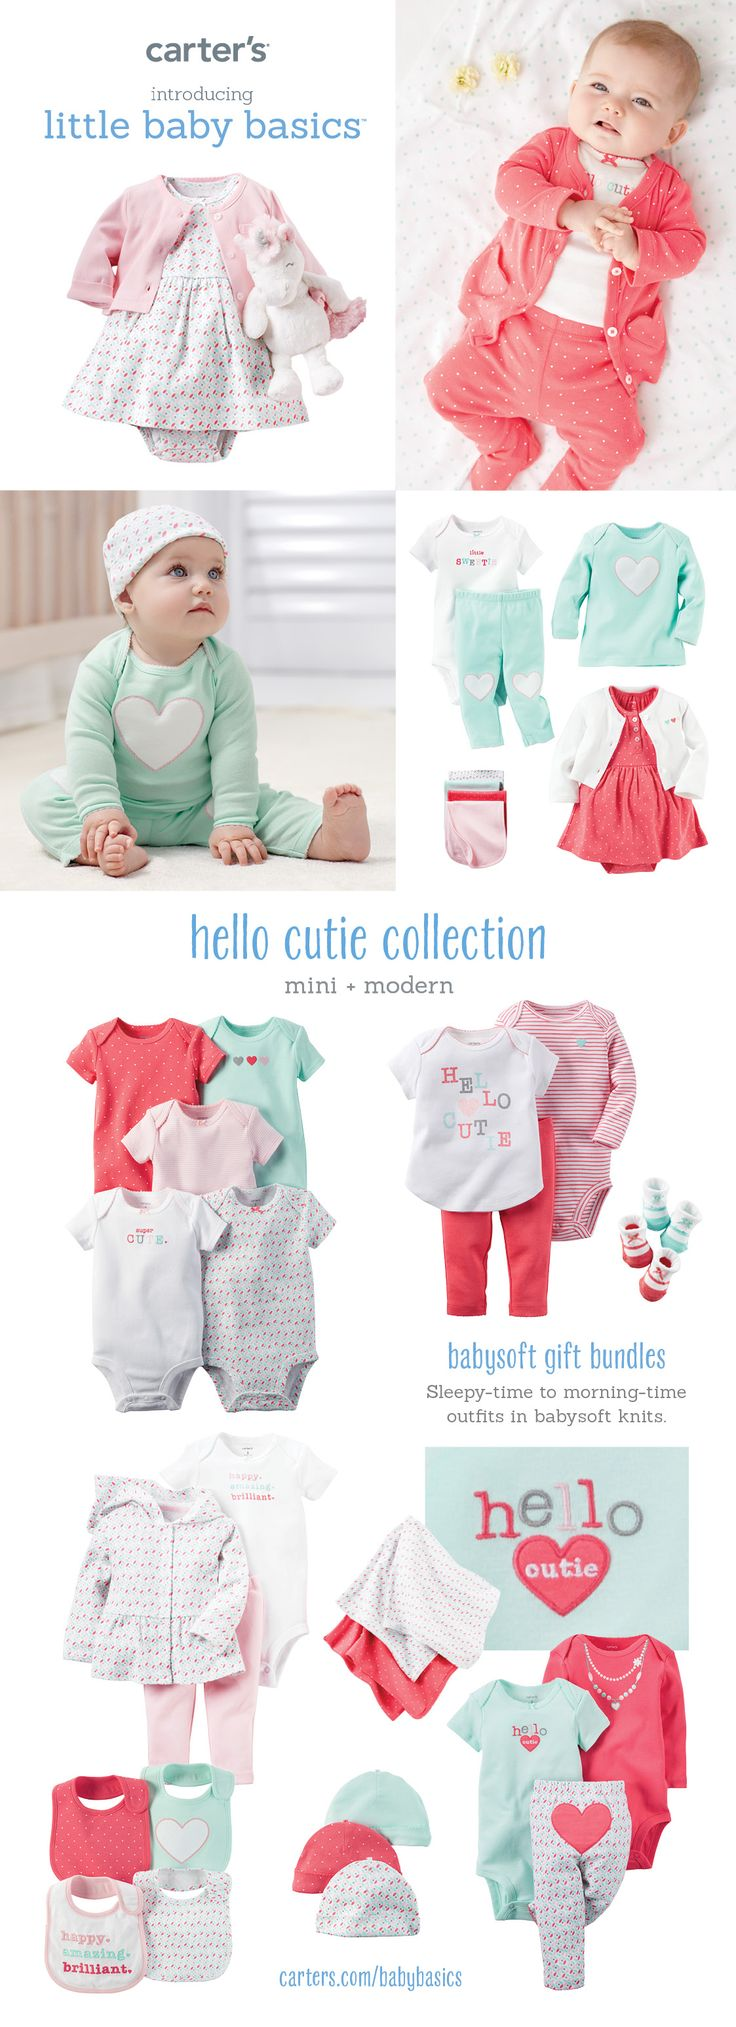 Perfect baby girl gift + must-have bodysuits + easy outfit sets. Shop all the latest styles at carters.com.